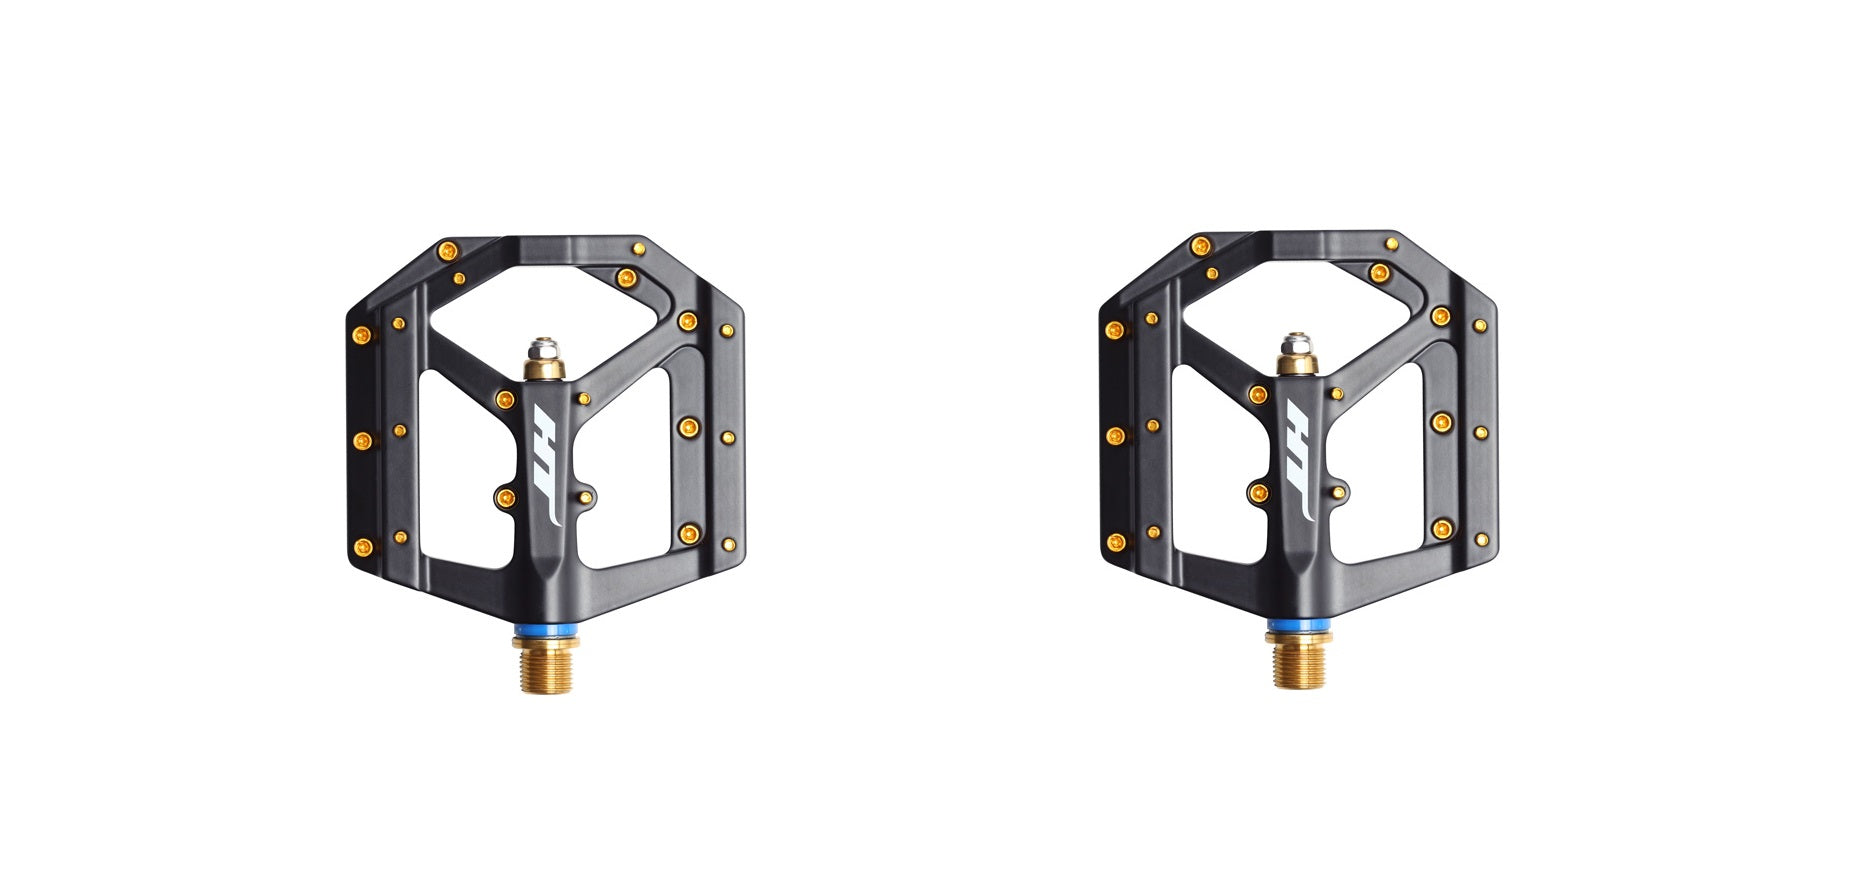 HT Components ME03T Platform Pedals with Titanium 9/16 Spindle Black Gold Pins MPN: HT-ME03 BLACK-Ti